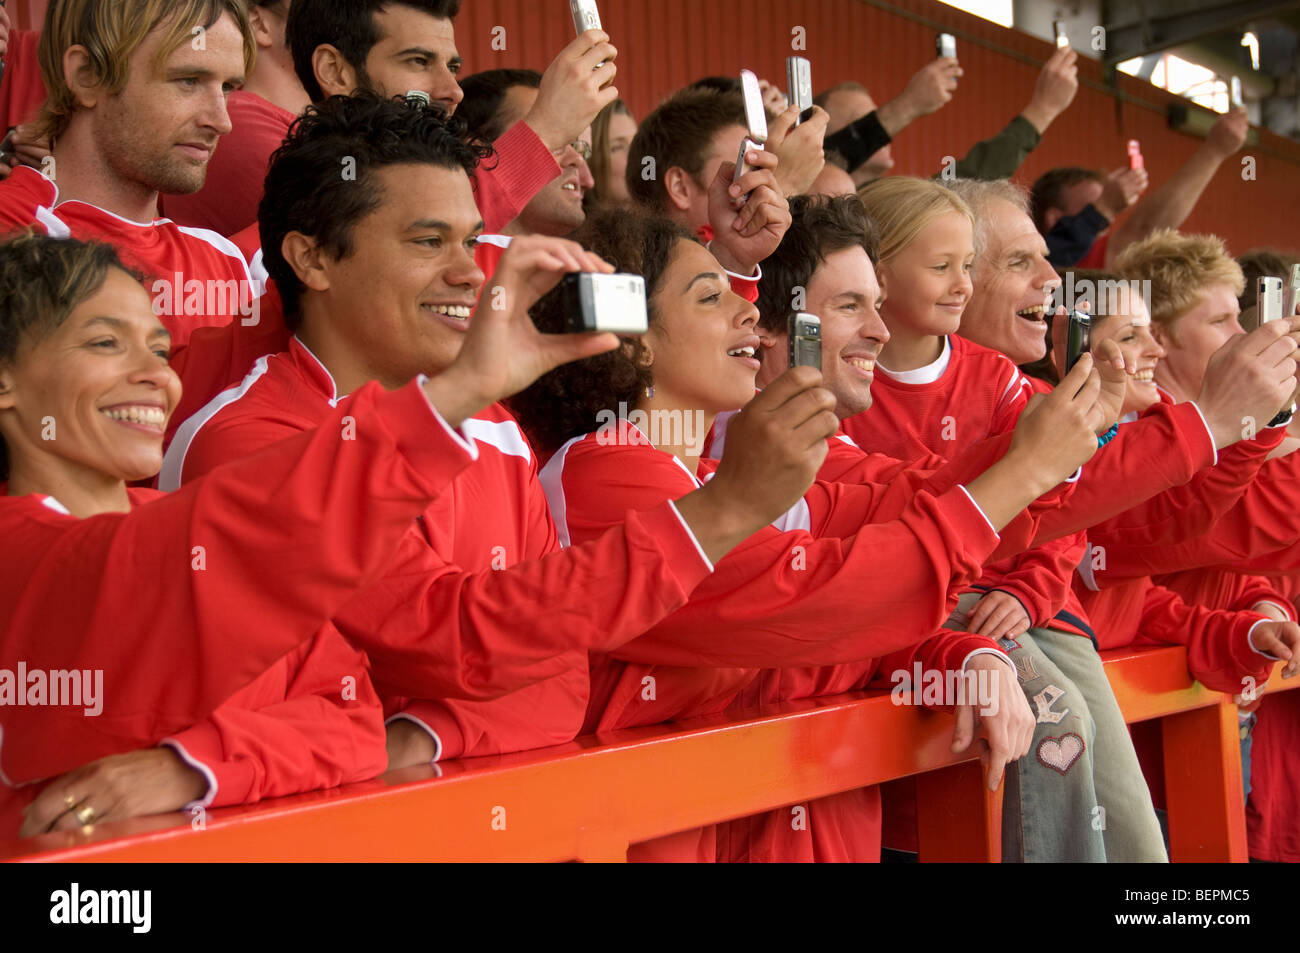 Fans taking photographs at football match - Stock Image